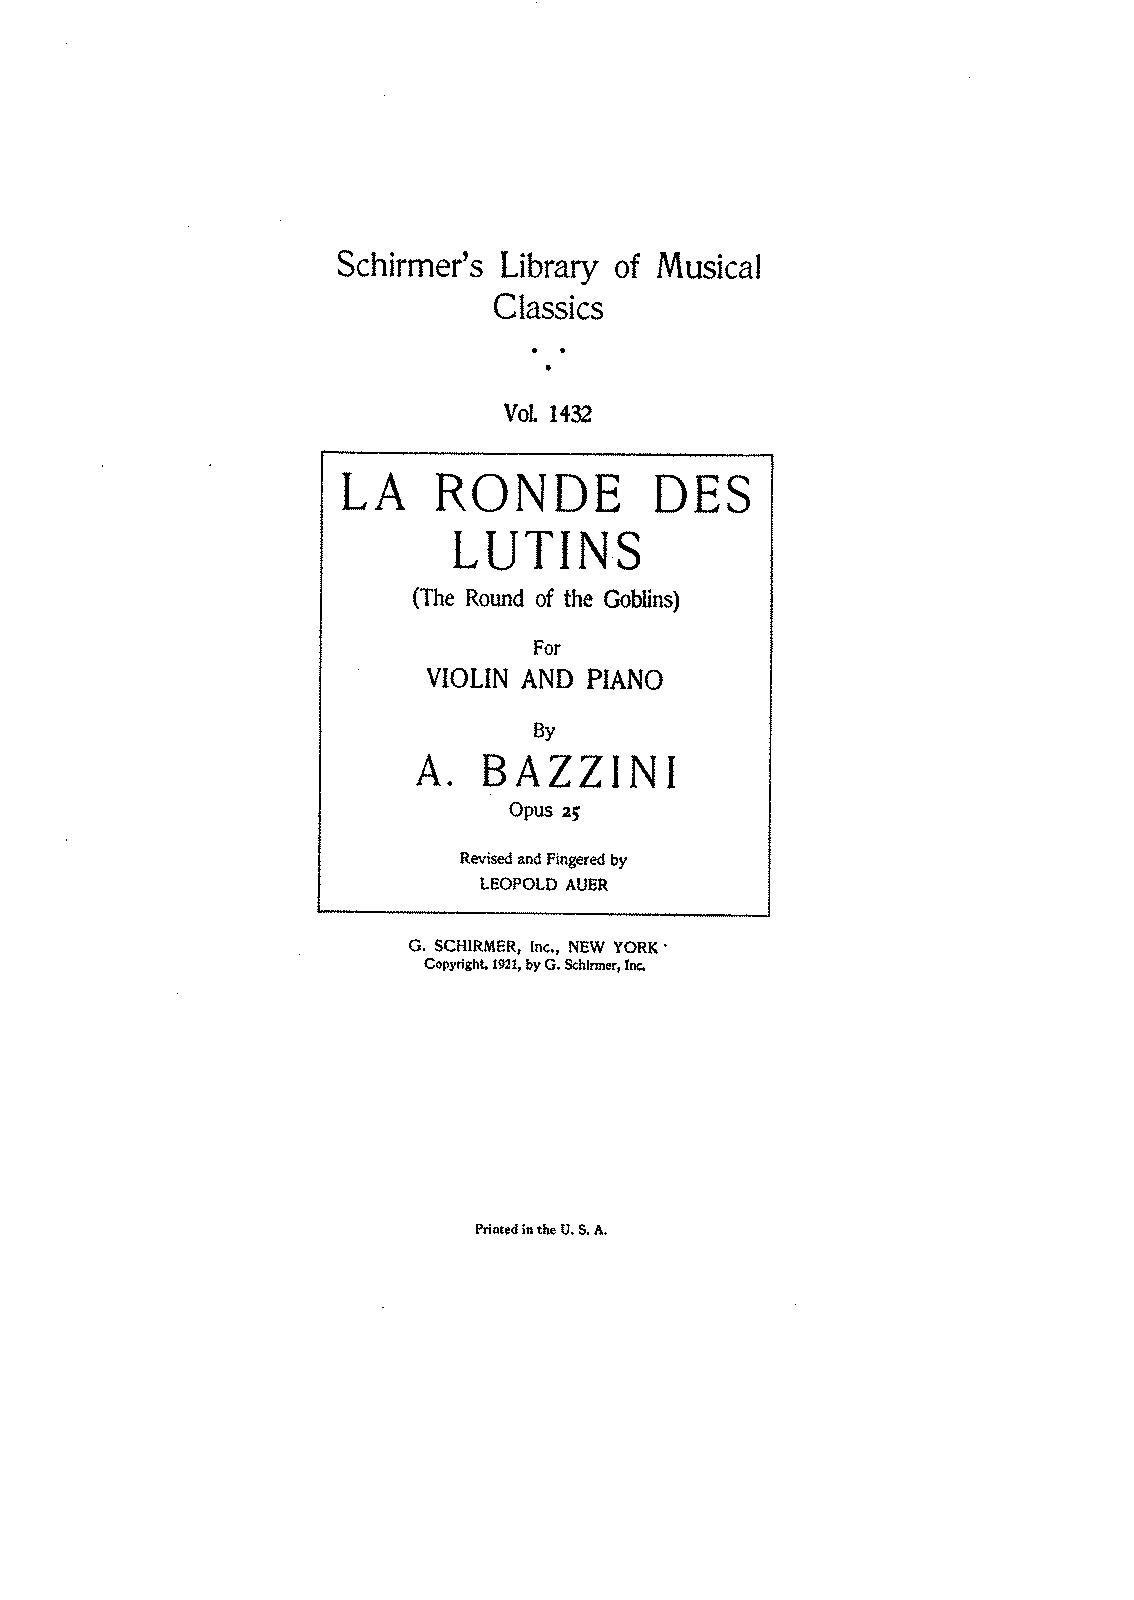 PMLP24350-Bazzini - Le ronde des lutins (The Round of the Goblins) for violin and piano Op25 (Auer) score.pdf